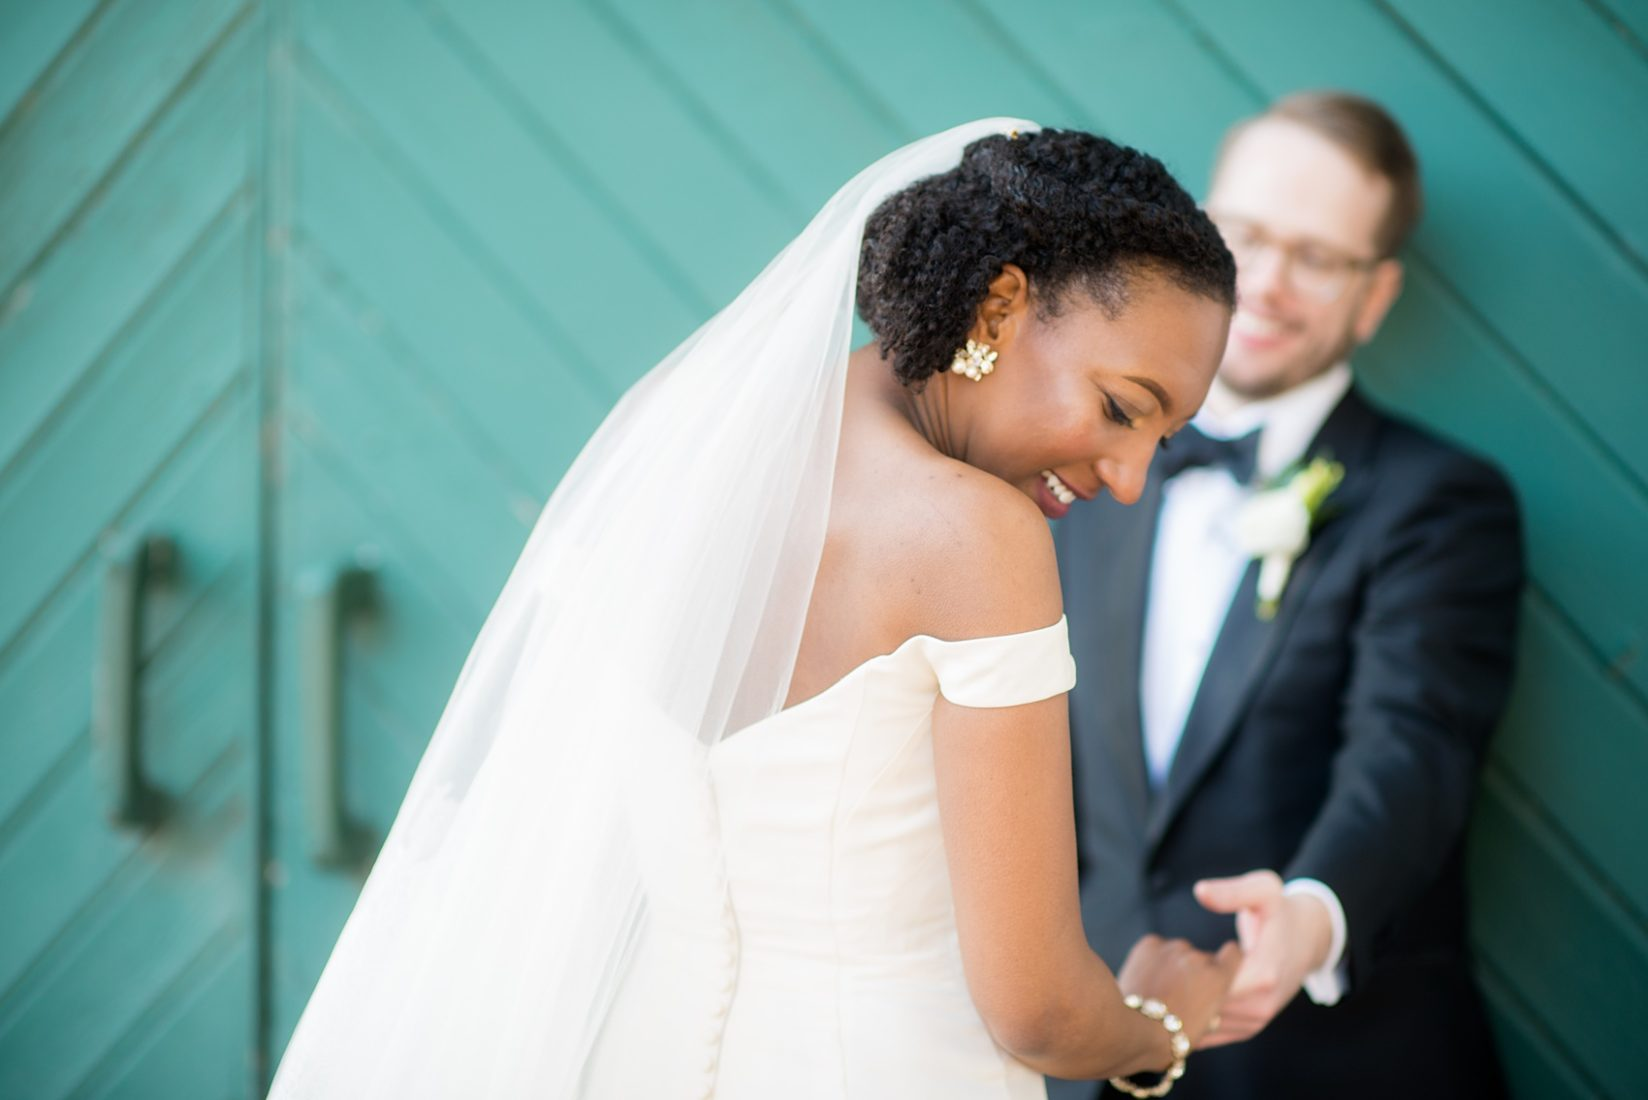 A fall wedding with burgundy, dusty rose and grey details. Mikkel Paige Photography, photographer in Greenville NC and Raleigh, captured this wedding at Rock Springs Center, planned by @vivalevent. The bride and groom had beautiful photos during golden hour on an autumn day! Click through for details! #mikkelpaige NCwedding #northcarolinawedding #southernwedding #brideandgroom